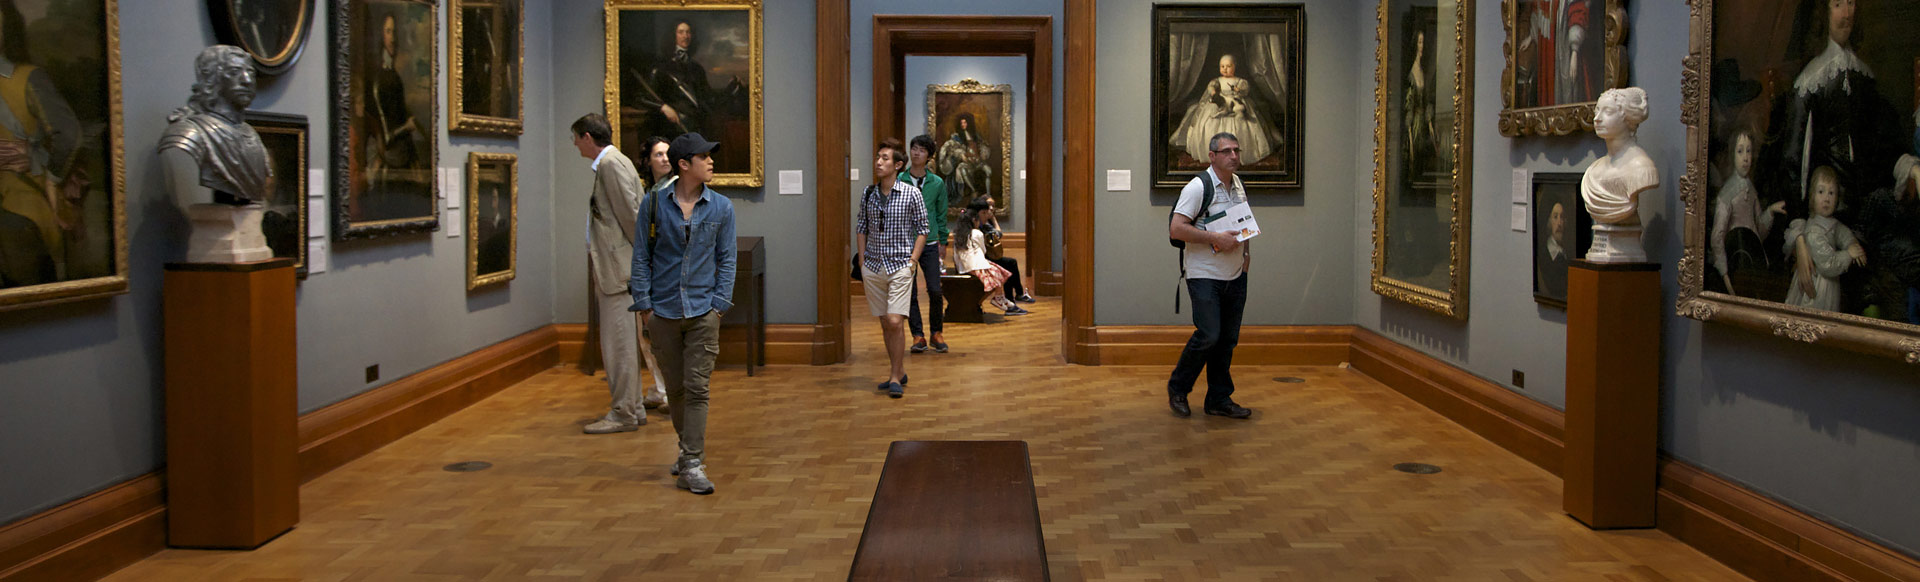 Interior of the National Portrait Gallery with people looking at paintings and sculptures. © London and Partners/Pawel Libera